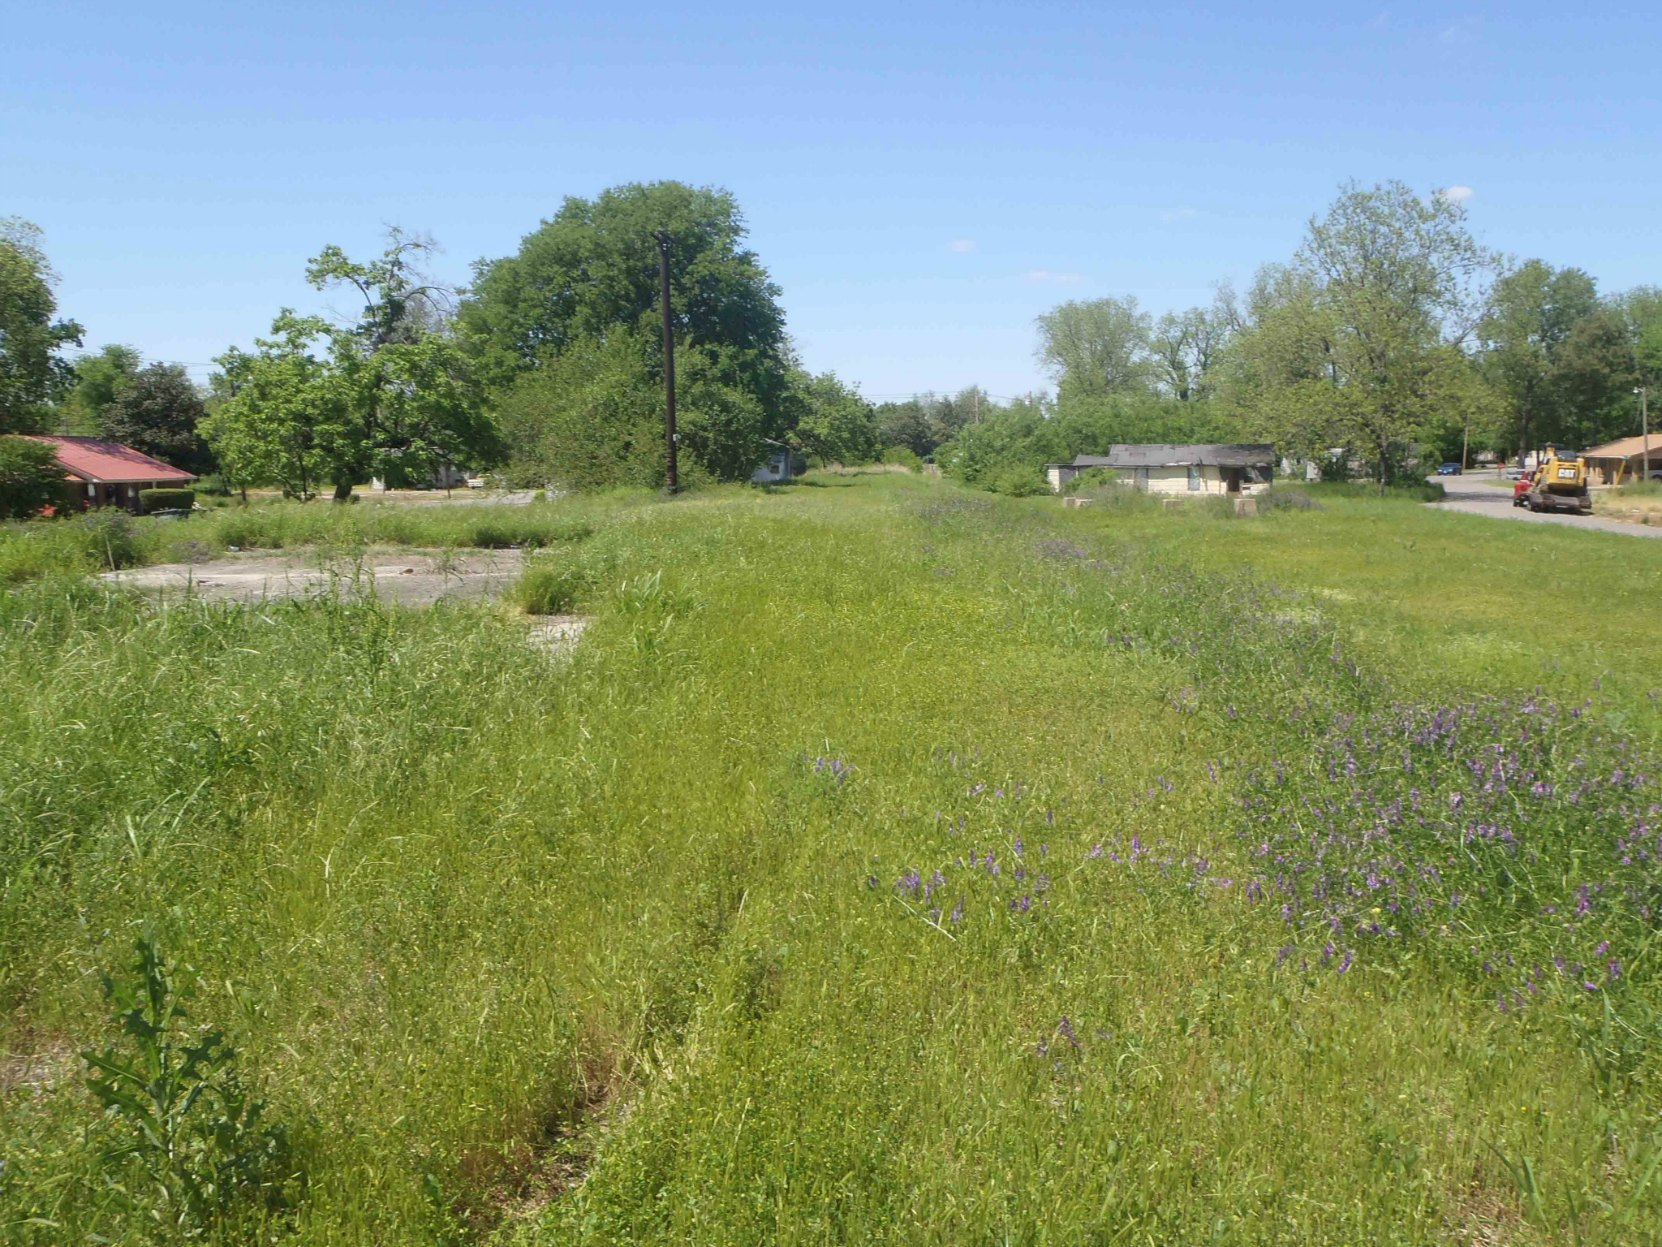 The site of Rosedale's former train station, now the location of the Mississippi Blues Trail's Rosedale marker